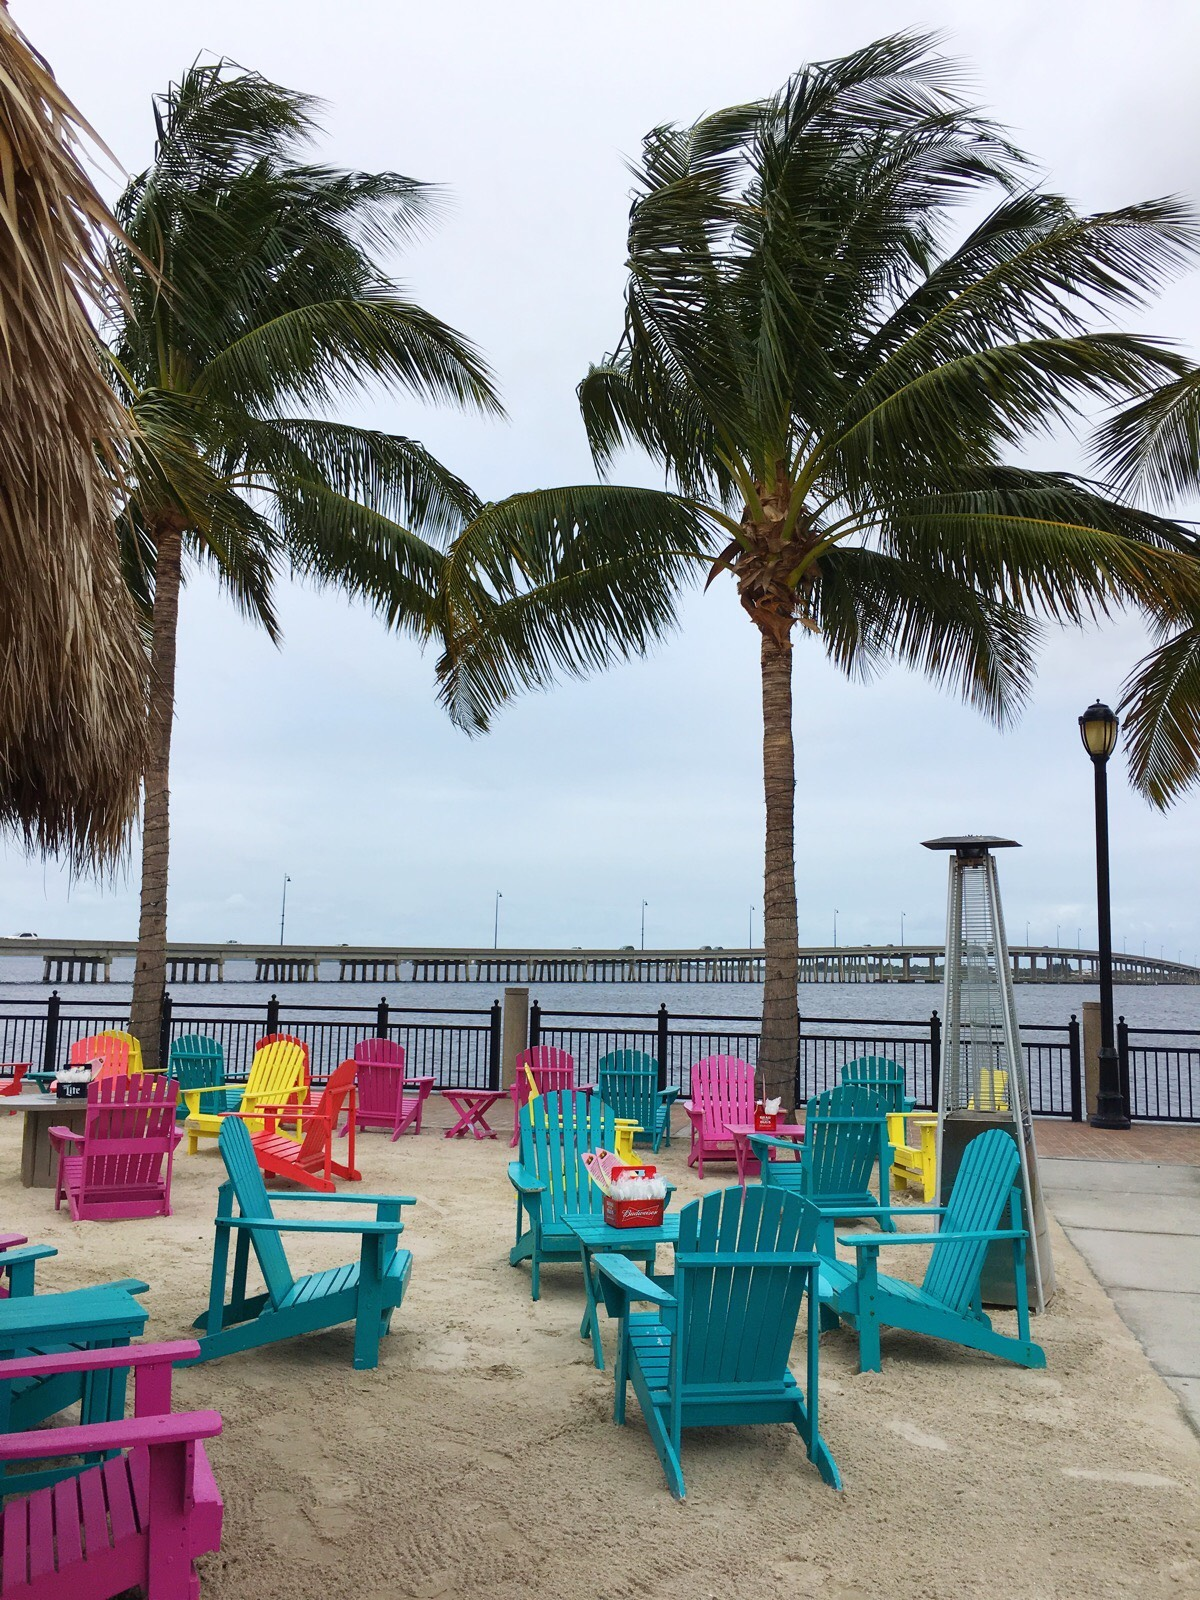 This photo depicts Punta Gorda, and all the palm trees and different colored chairs outside by the beach bar.